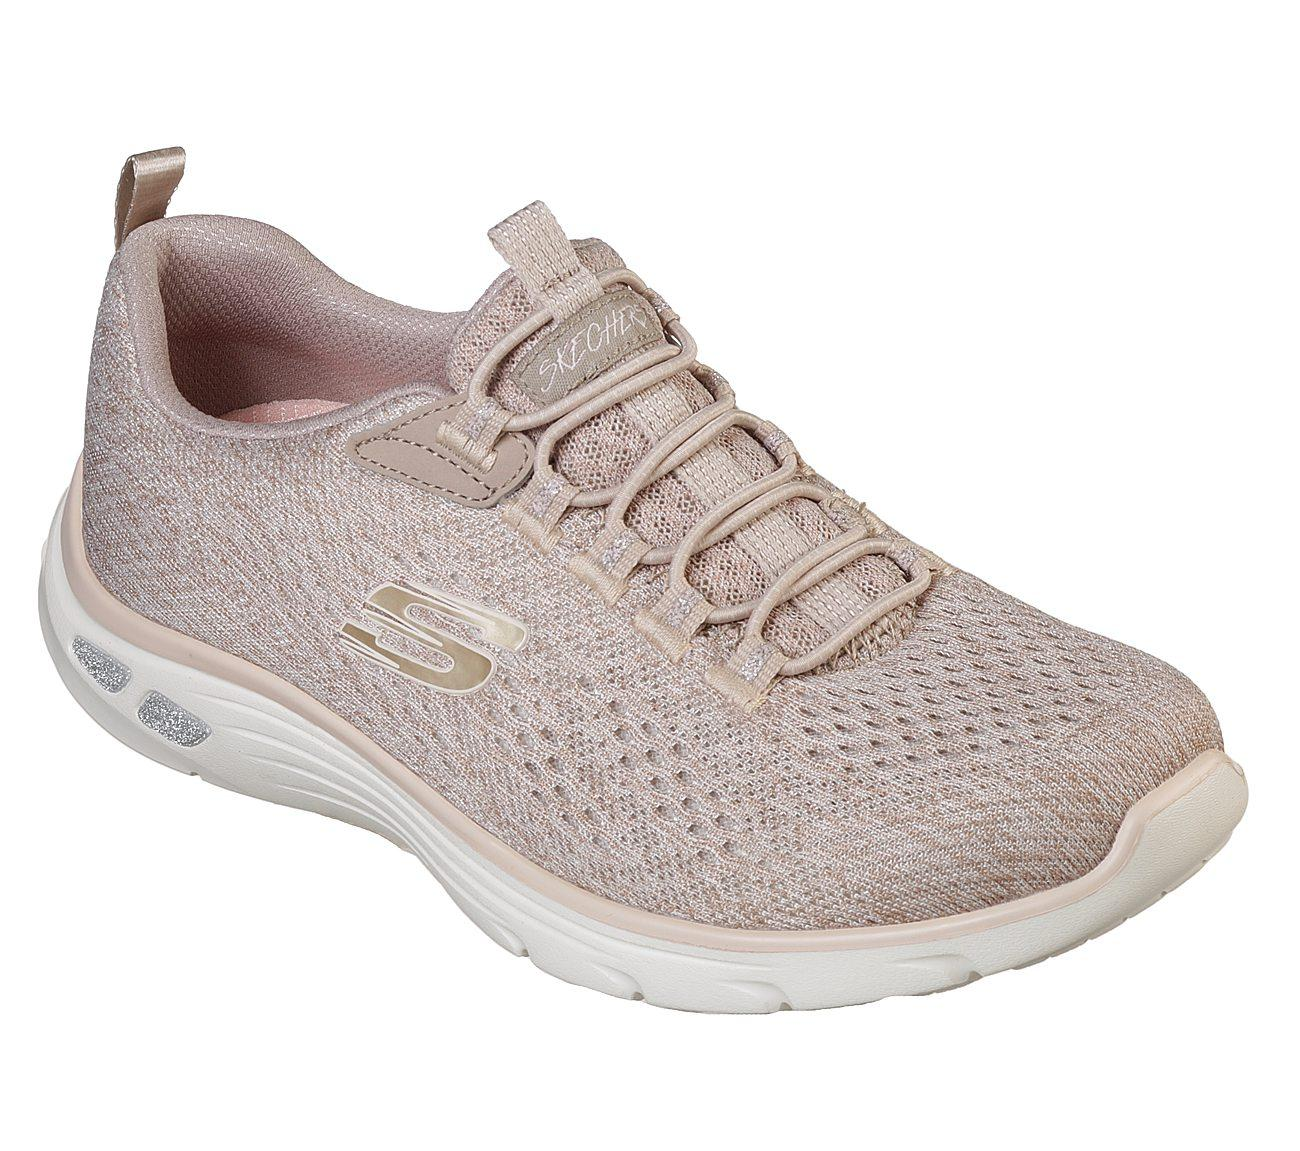 Skechers - Relaxed Fit  Empire D Lux - Lively Wind Sepatu Olahraga Sneakers  Wanita 9559e88a5b